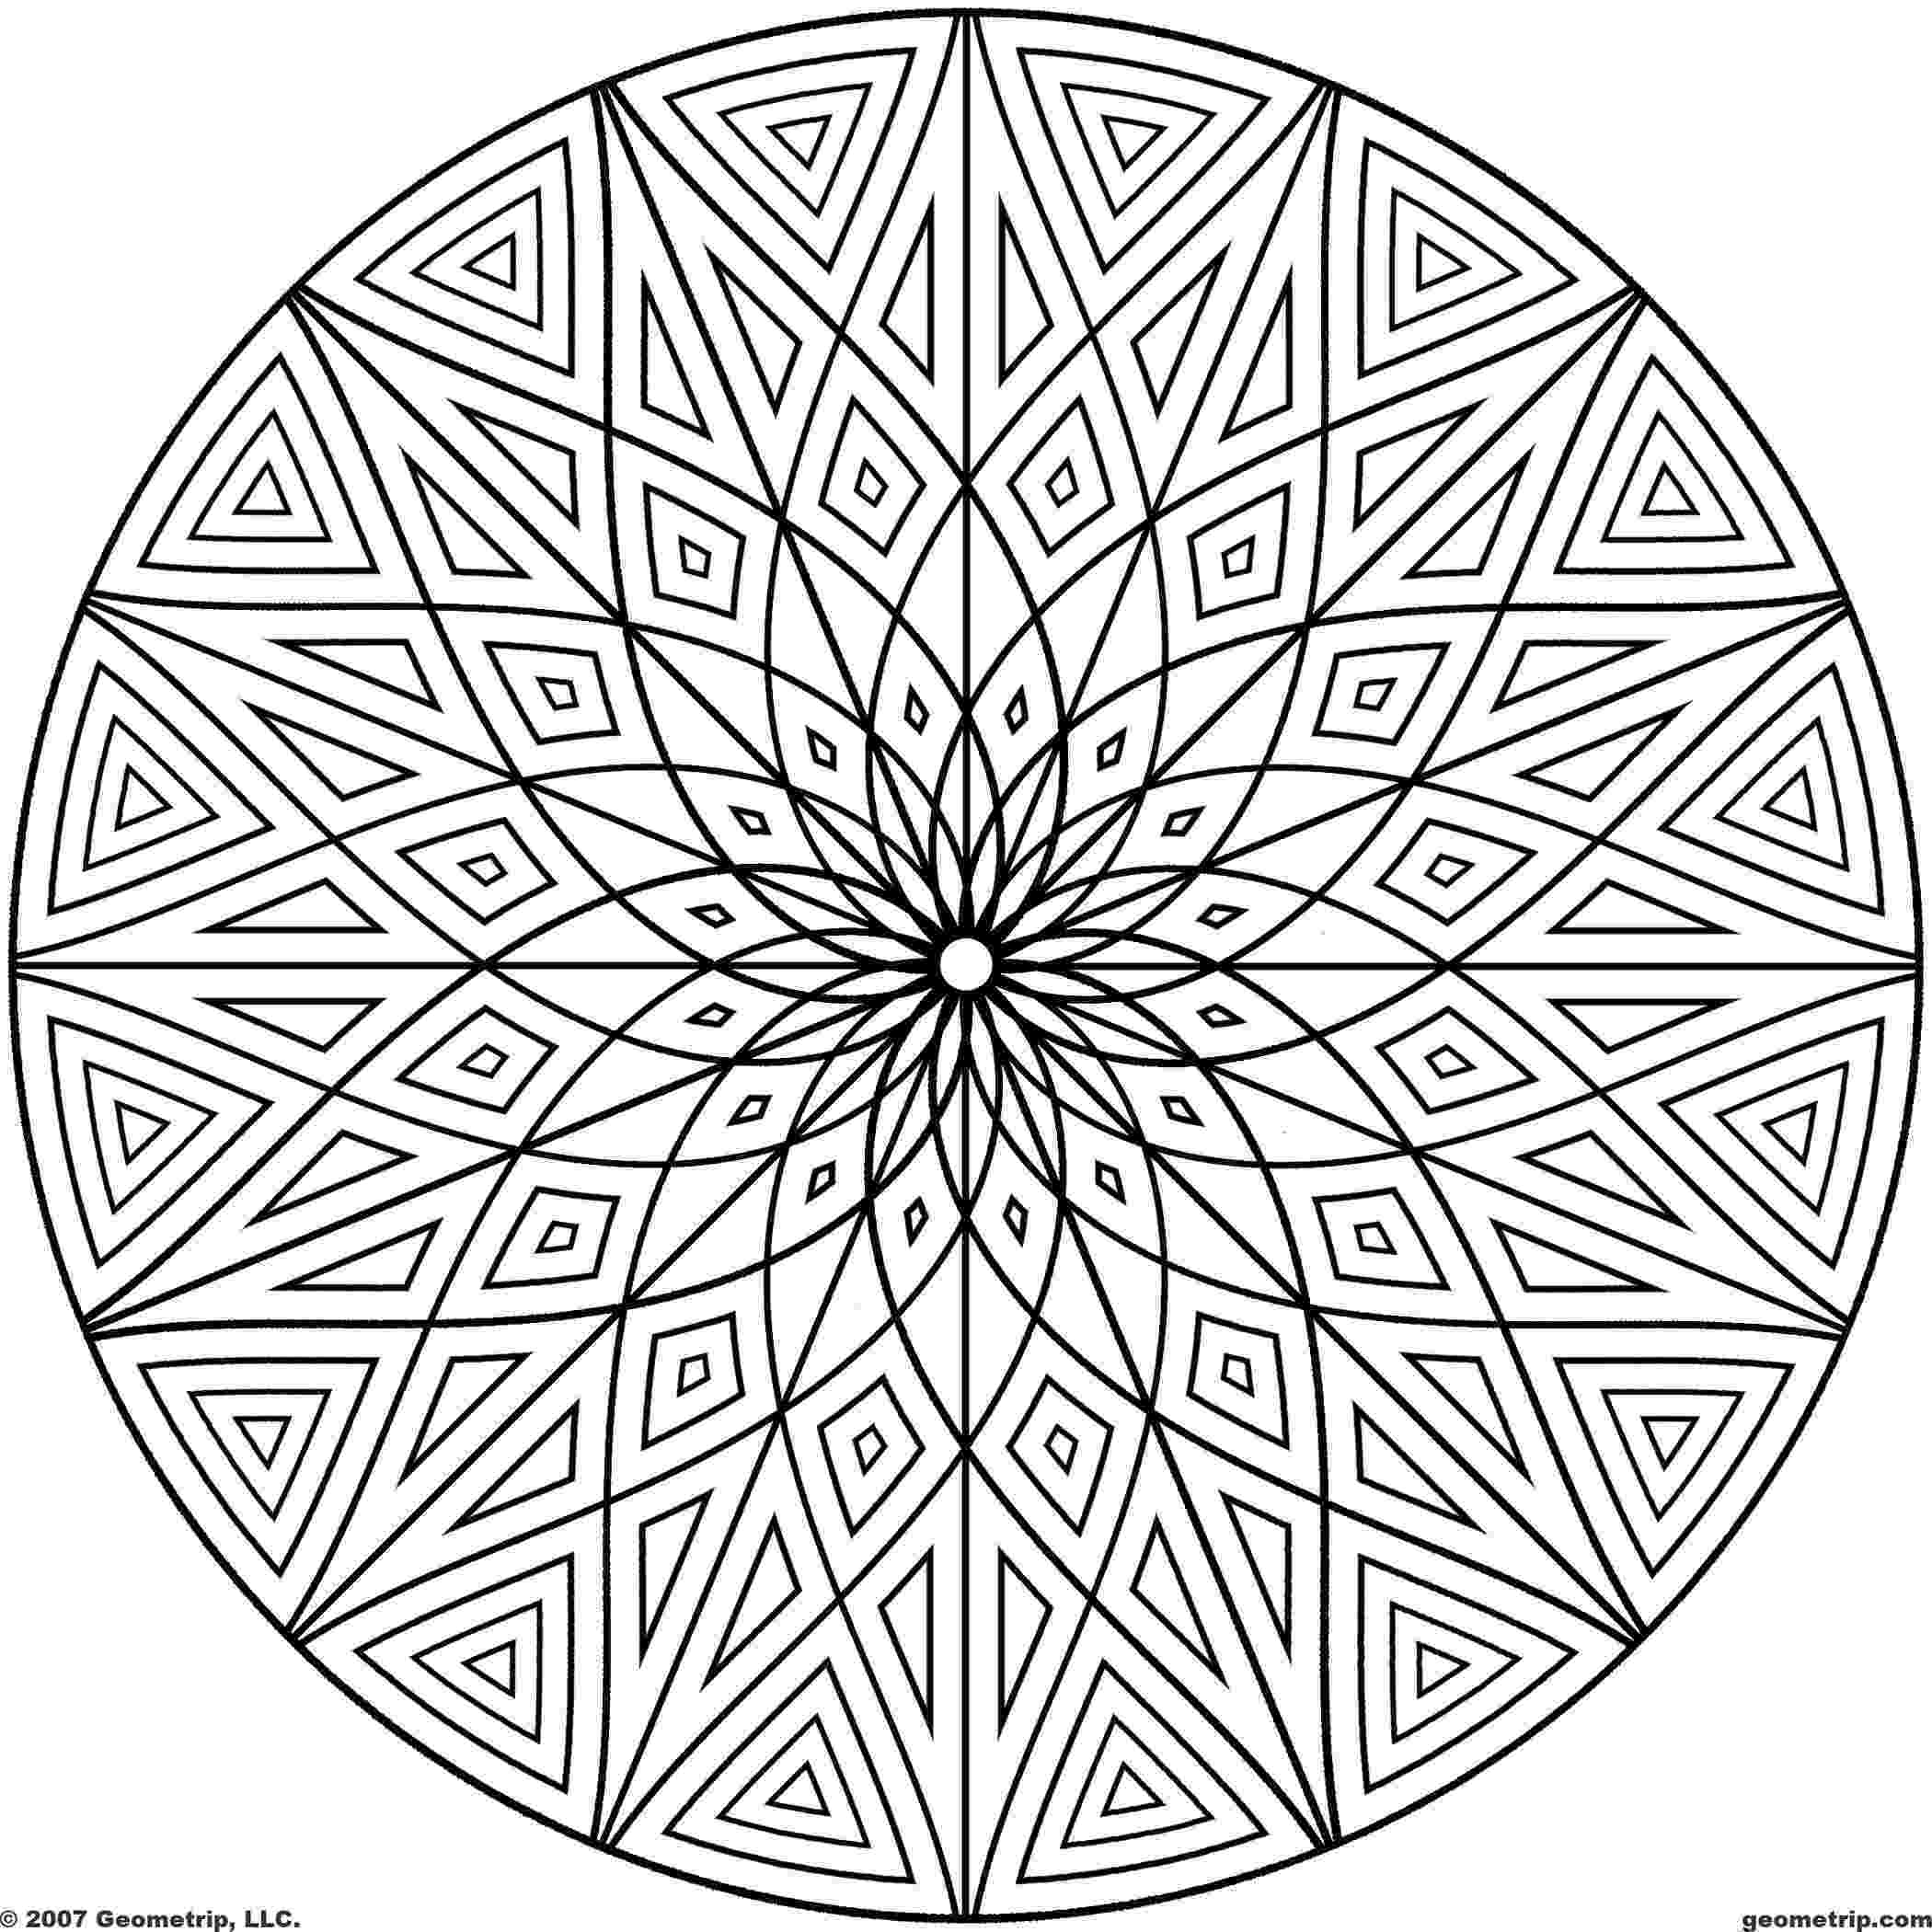 coloring patterns 25 coloring pages including mandalas geometric designs rug coloring patterns